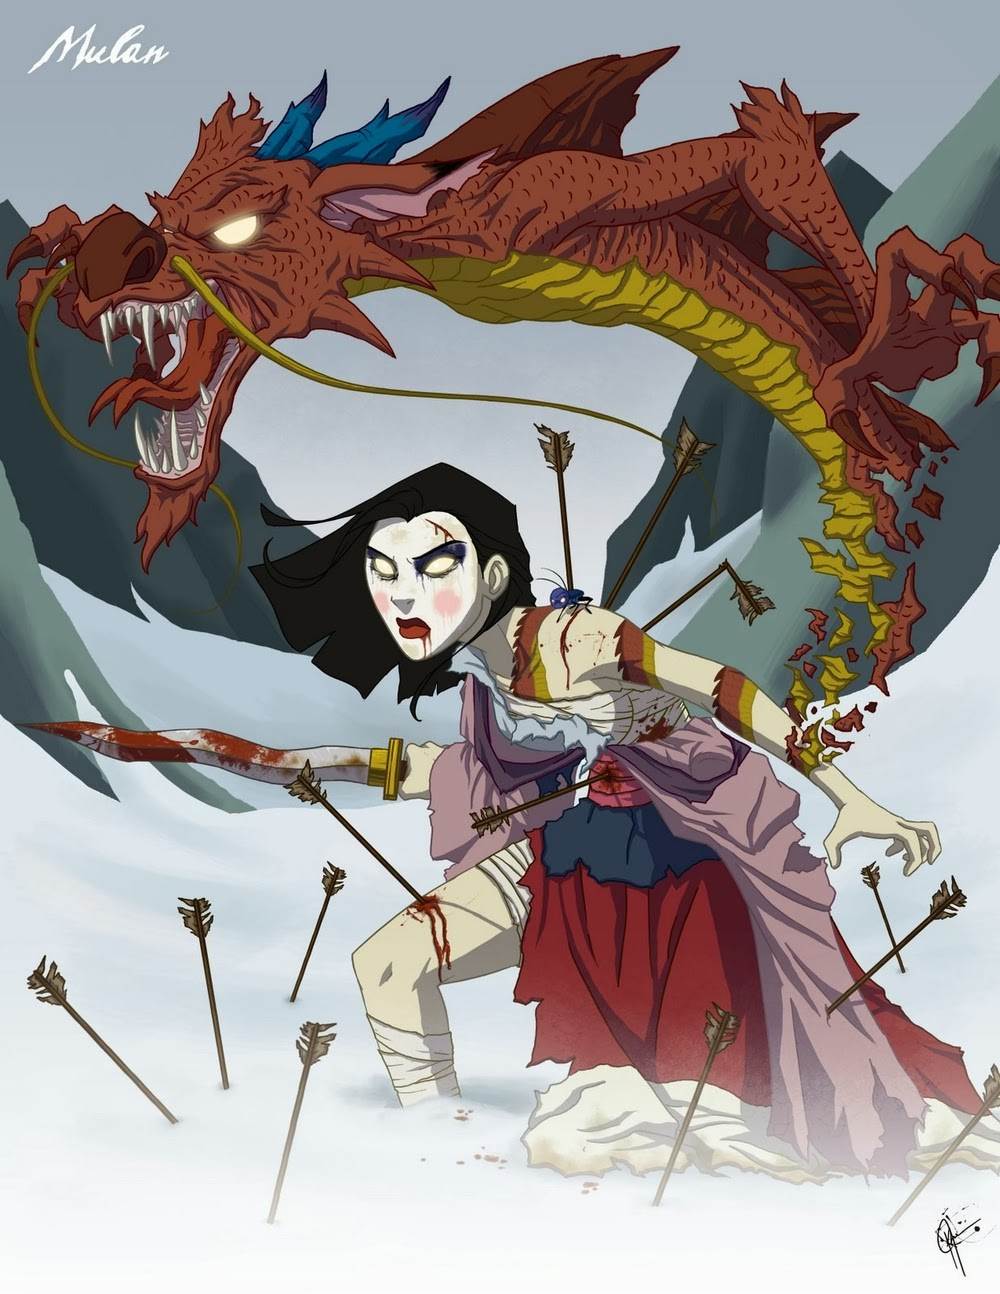 09-Mulan-Jeffrey-Thomas-Twisted-Princess-www-designstack-co